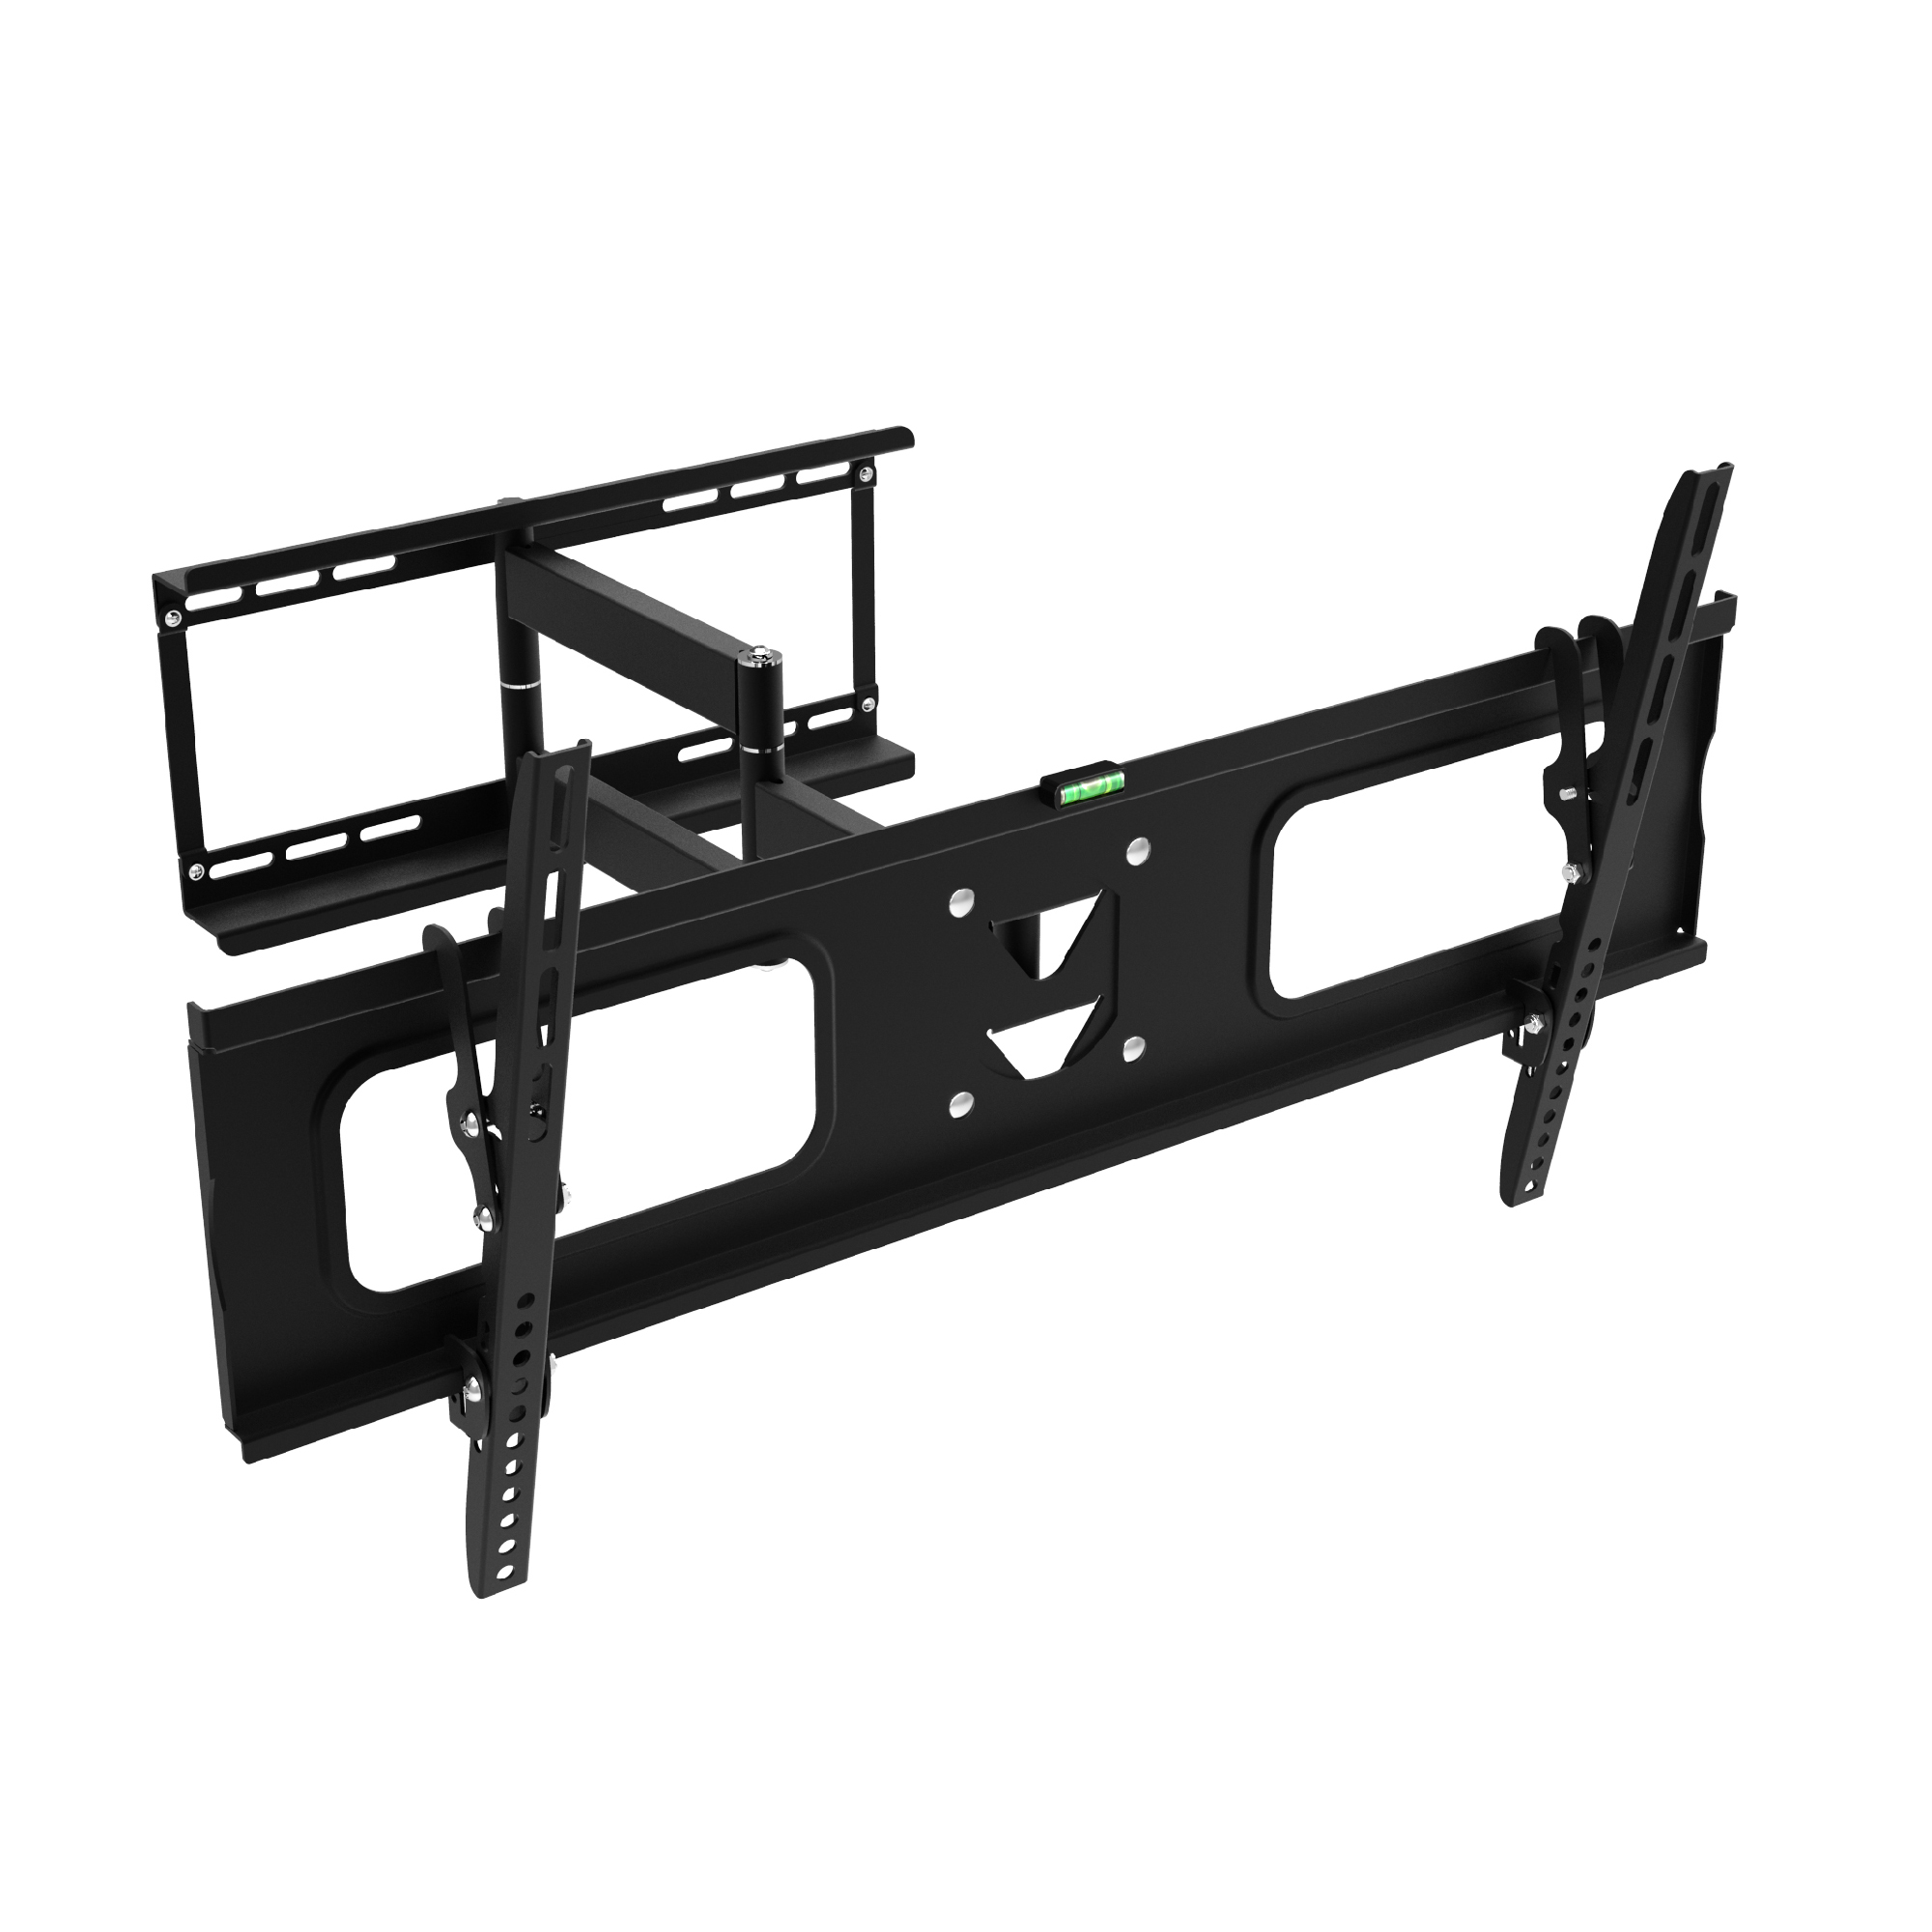 "19-80"" Full-Motion Articulating Tilt/Swivel Wall Mount with HDMI Cable"